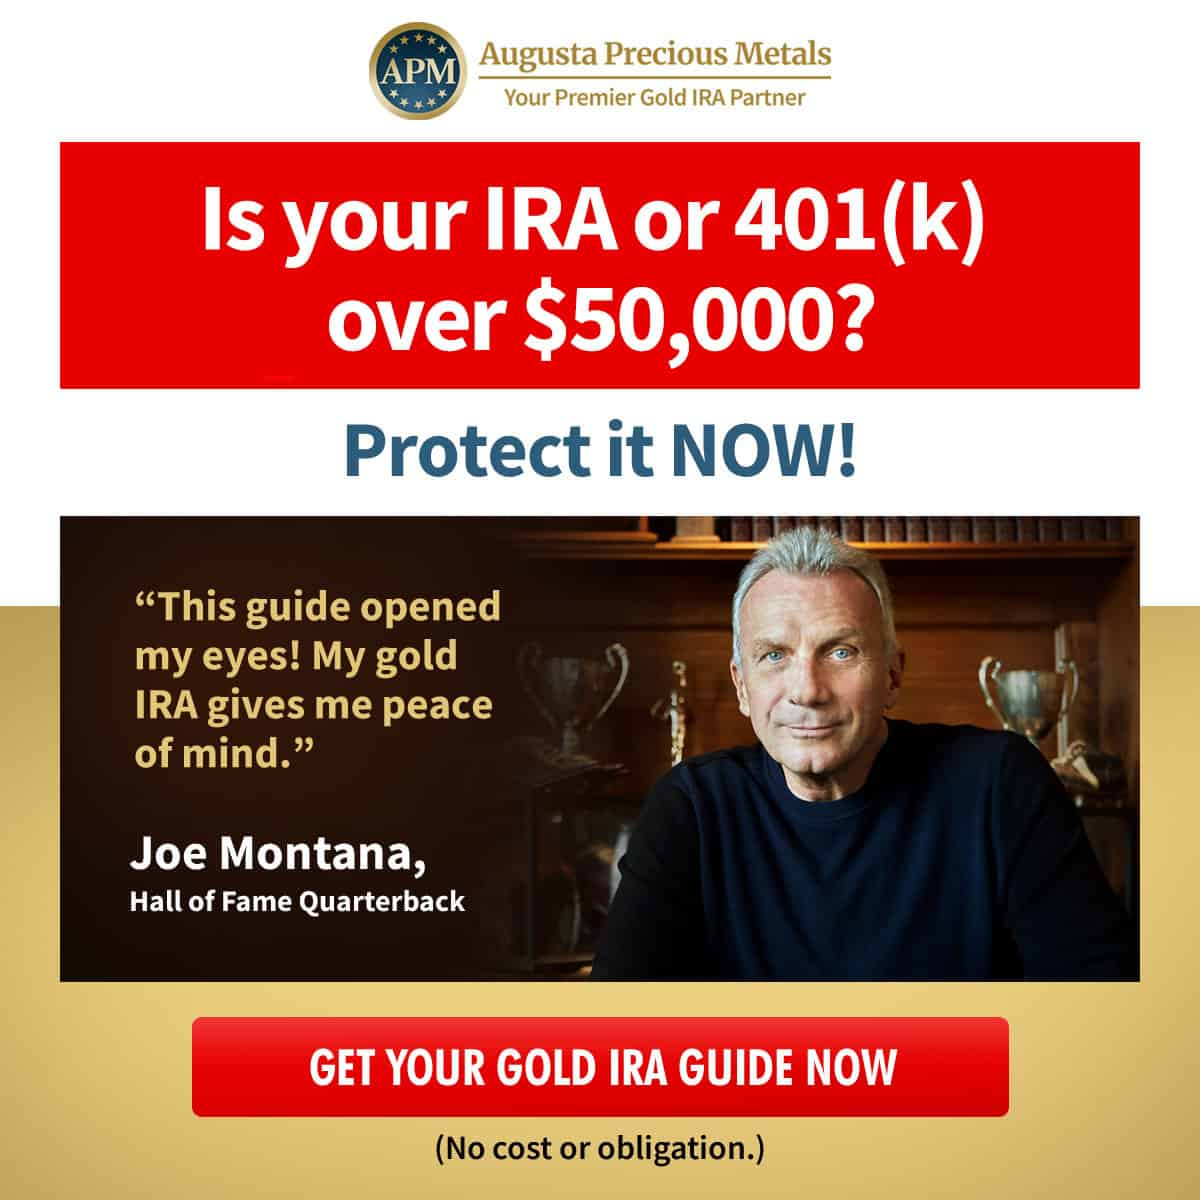 augusta joe montana gold IRA guide $50k offer A